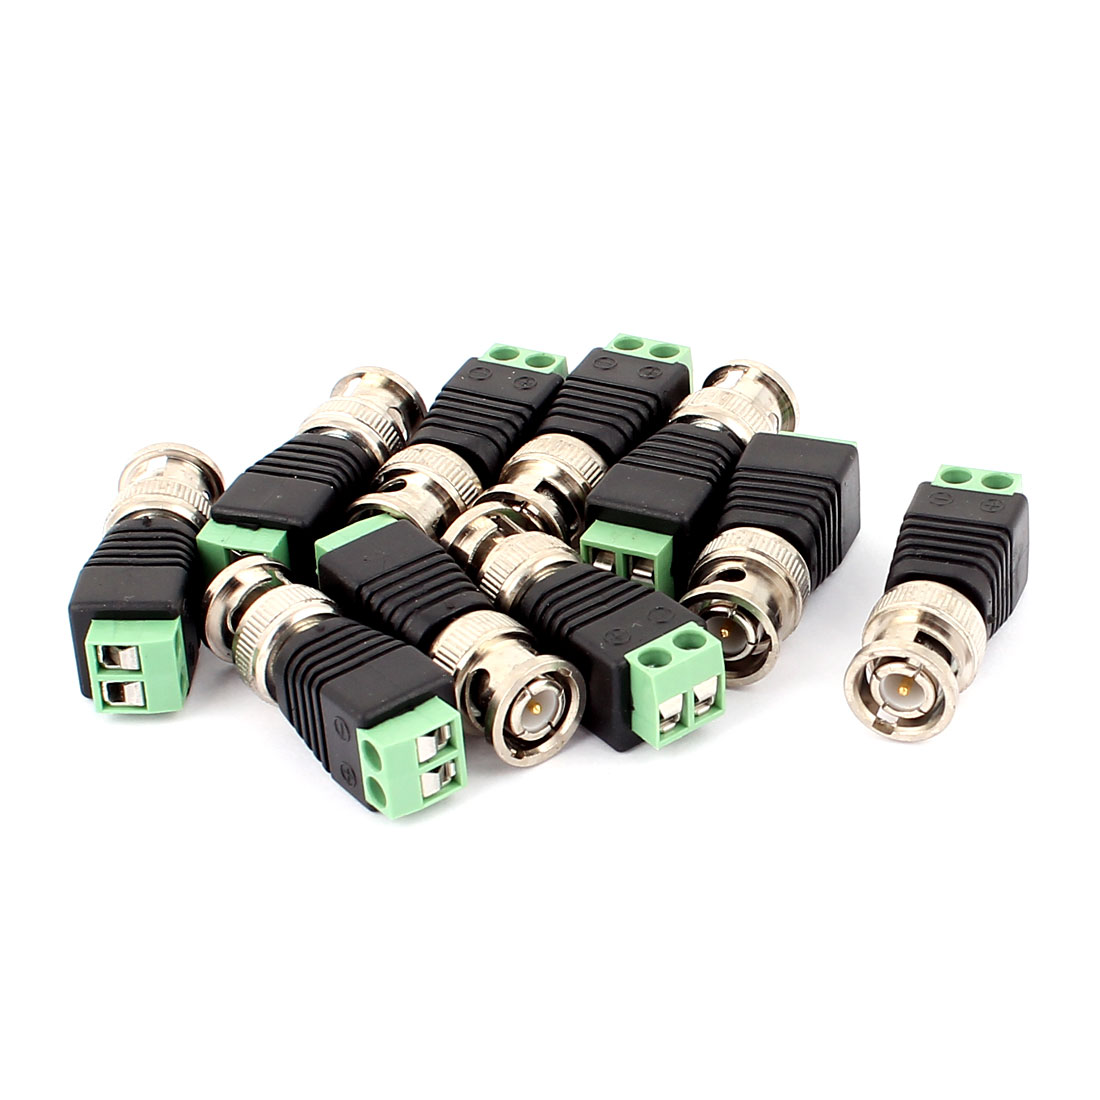 10 Pcs Screw Terminal Coaxial Cat5 to BNC Male Jack Video Balun Connector